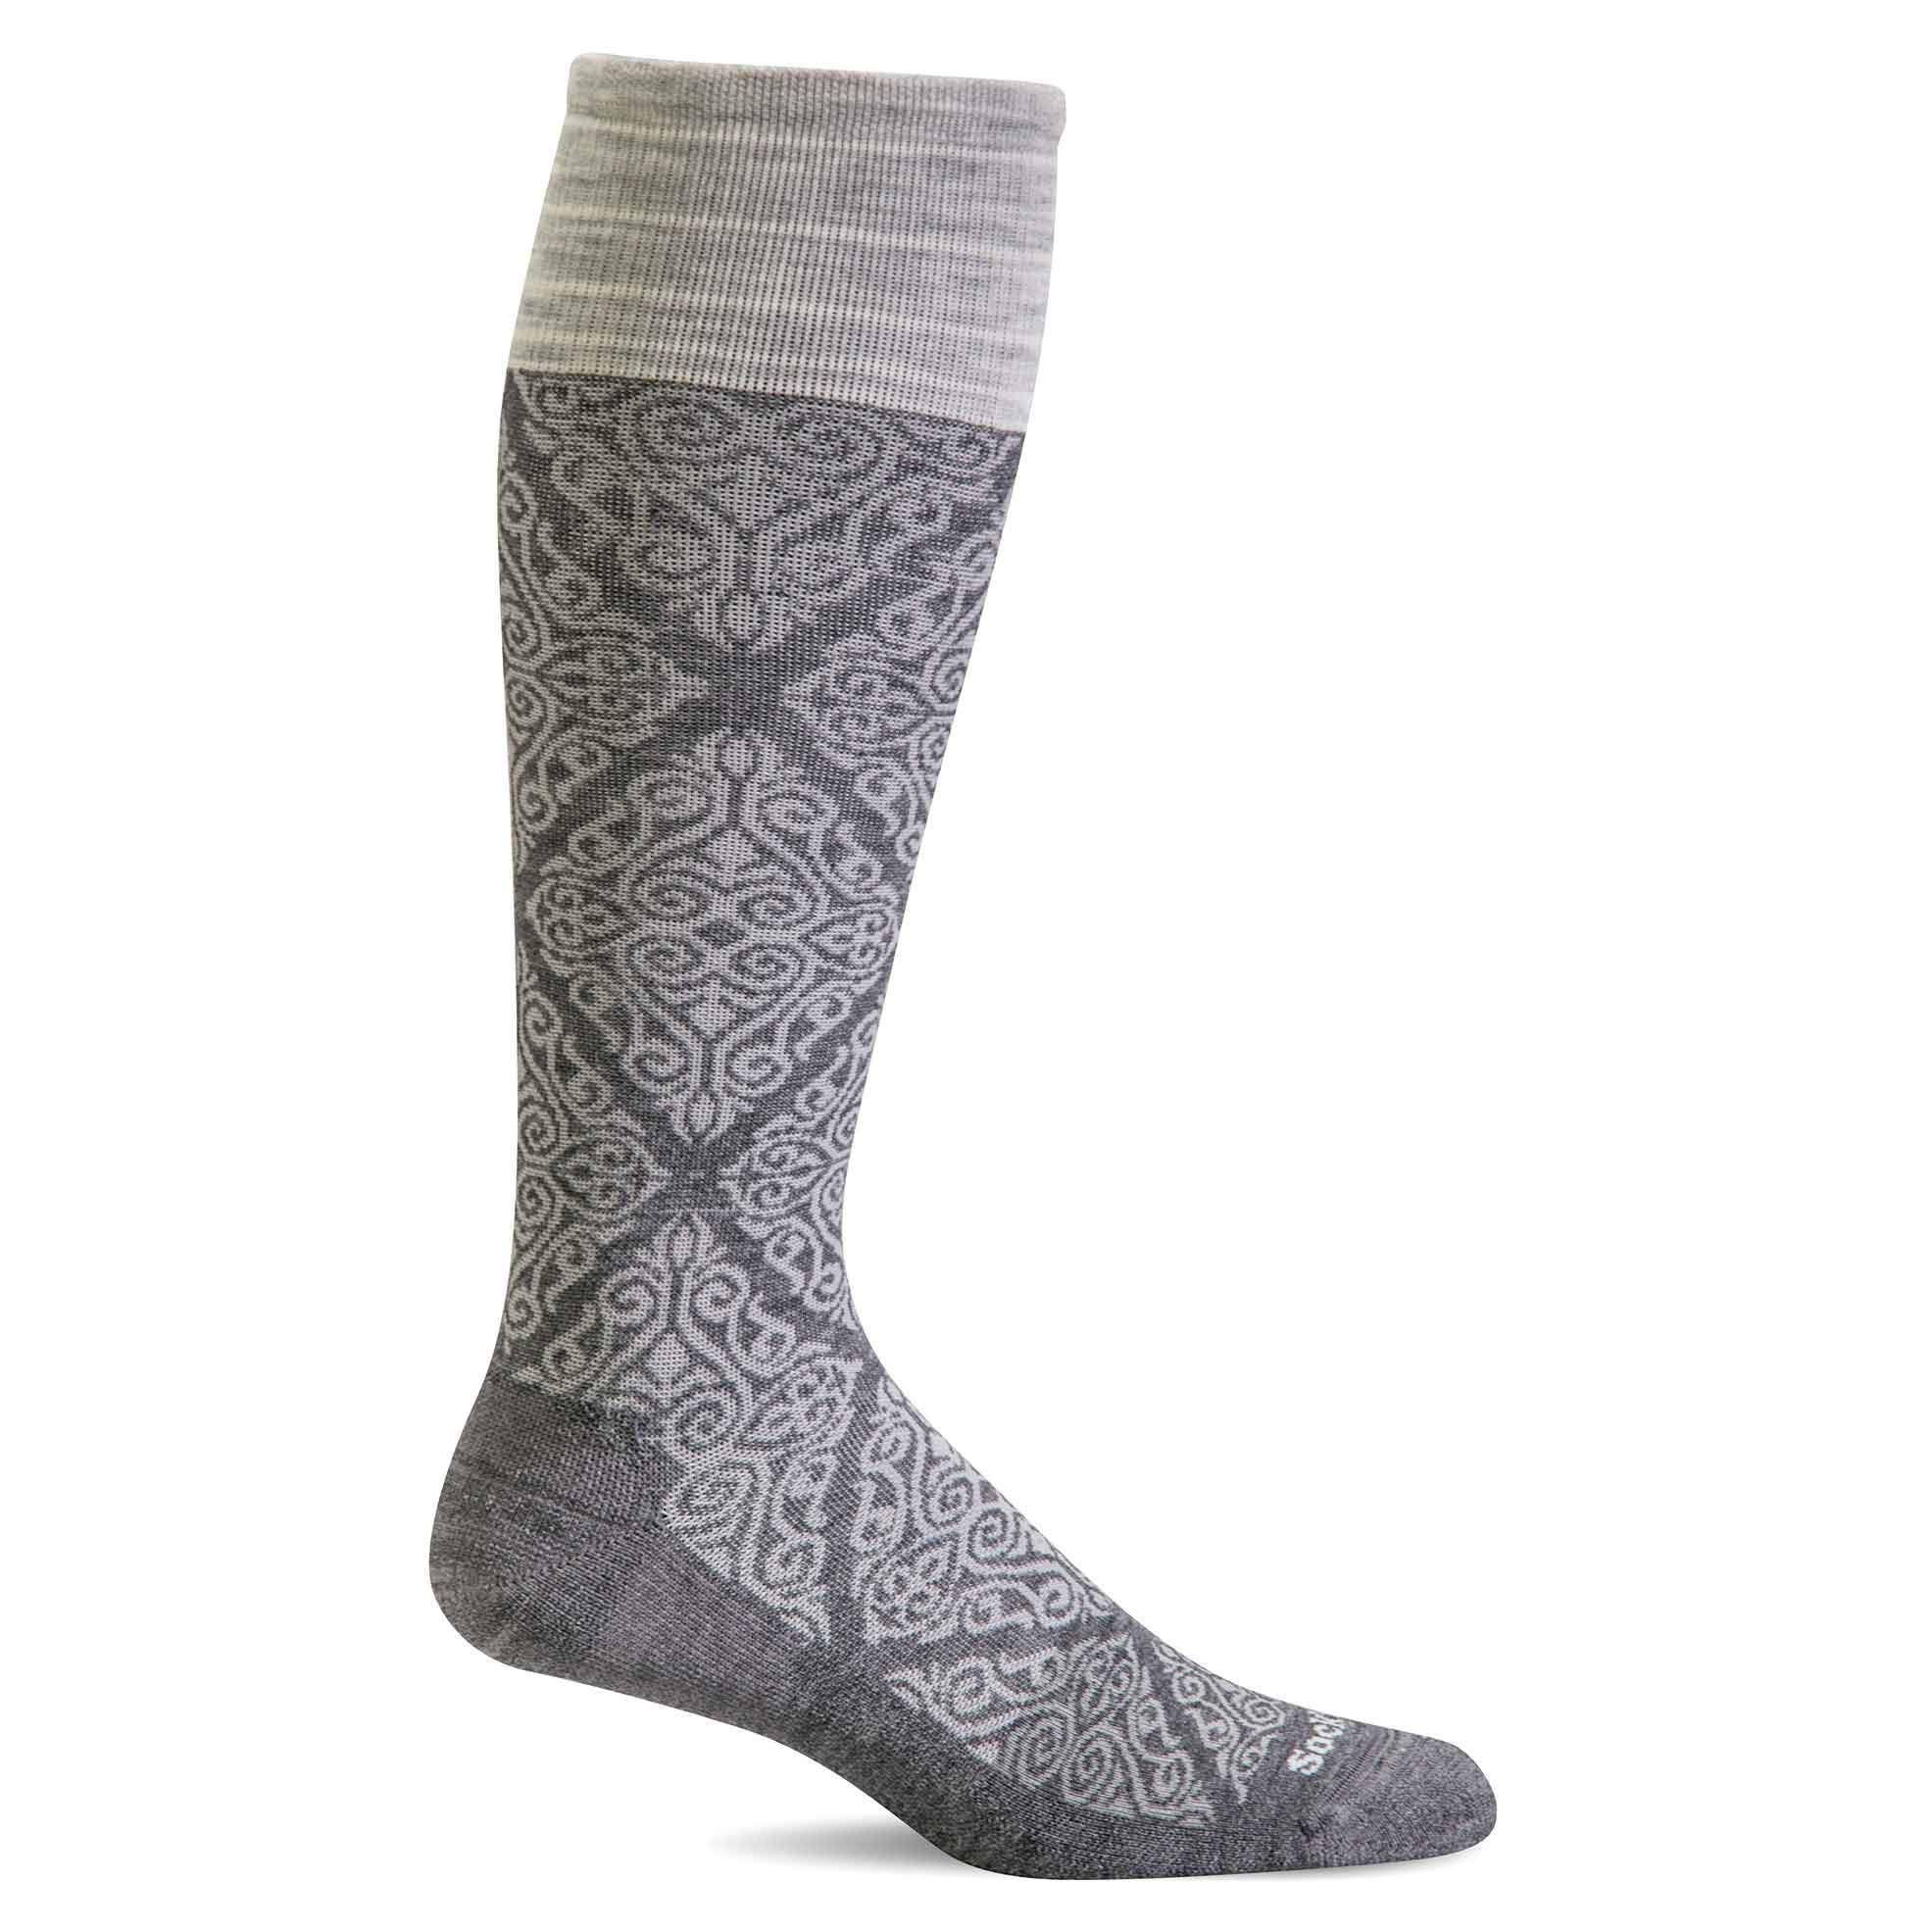 Sockwell Women's The Raj Firm Compression Socks M/L / Charcoal